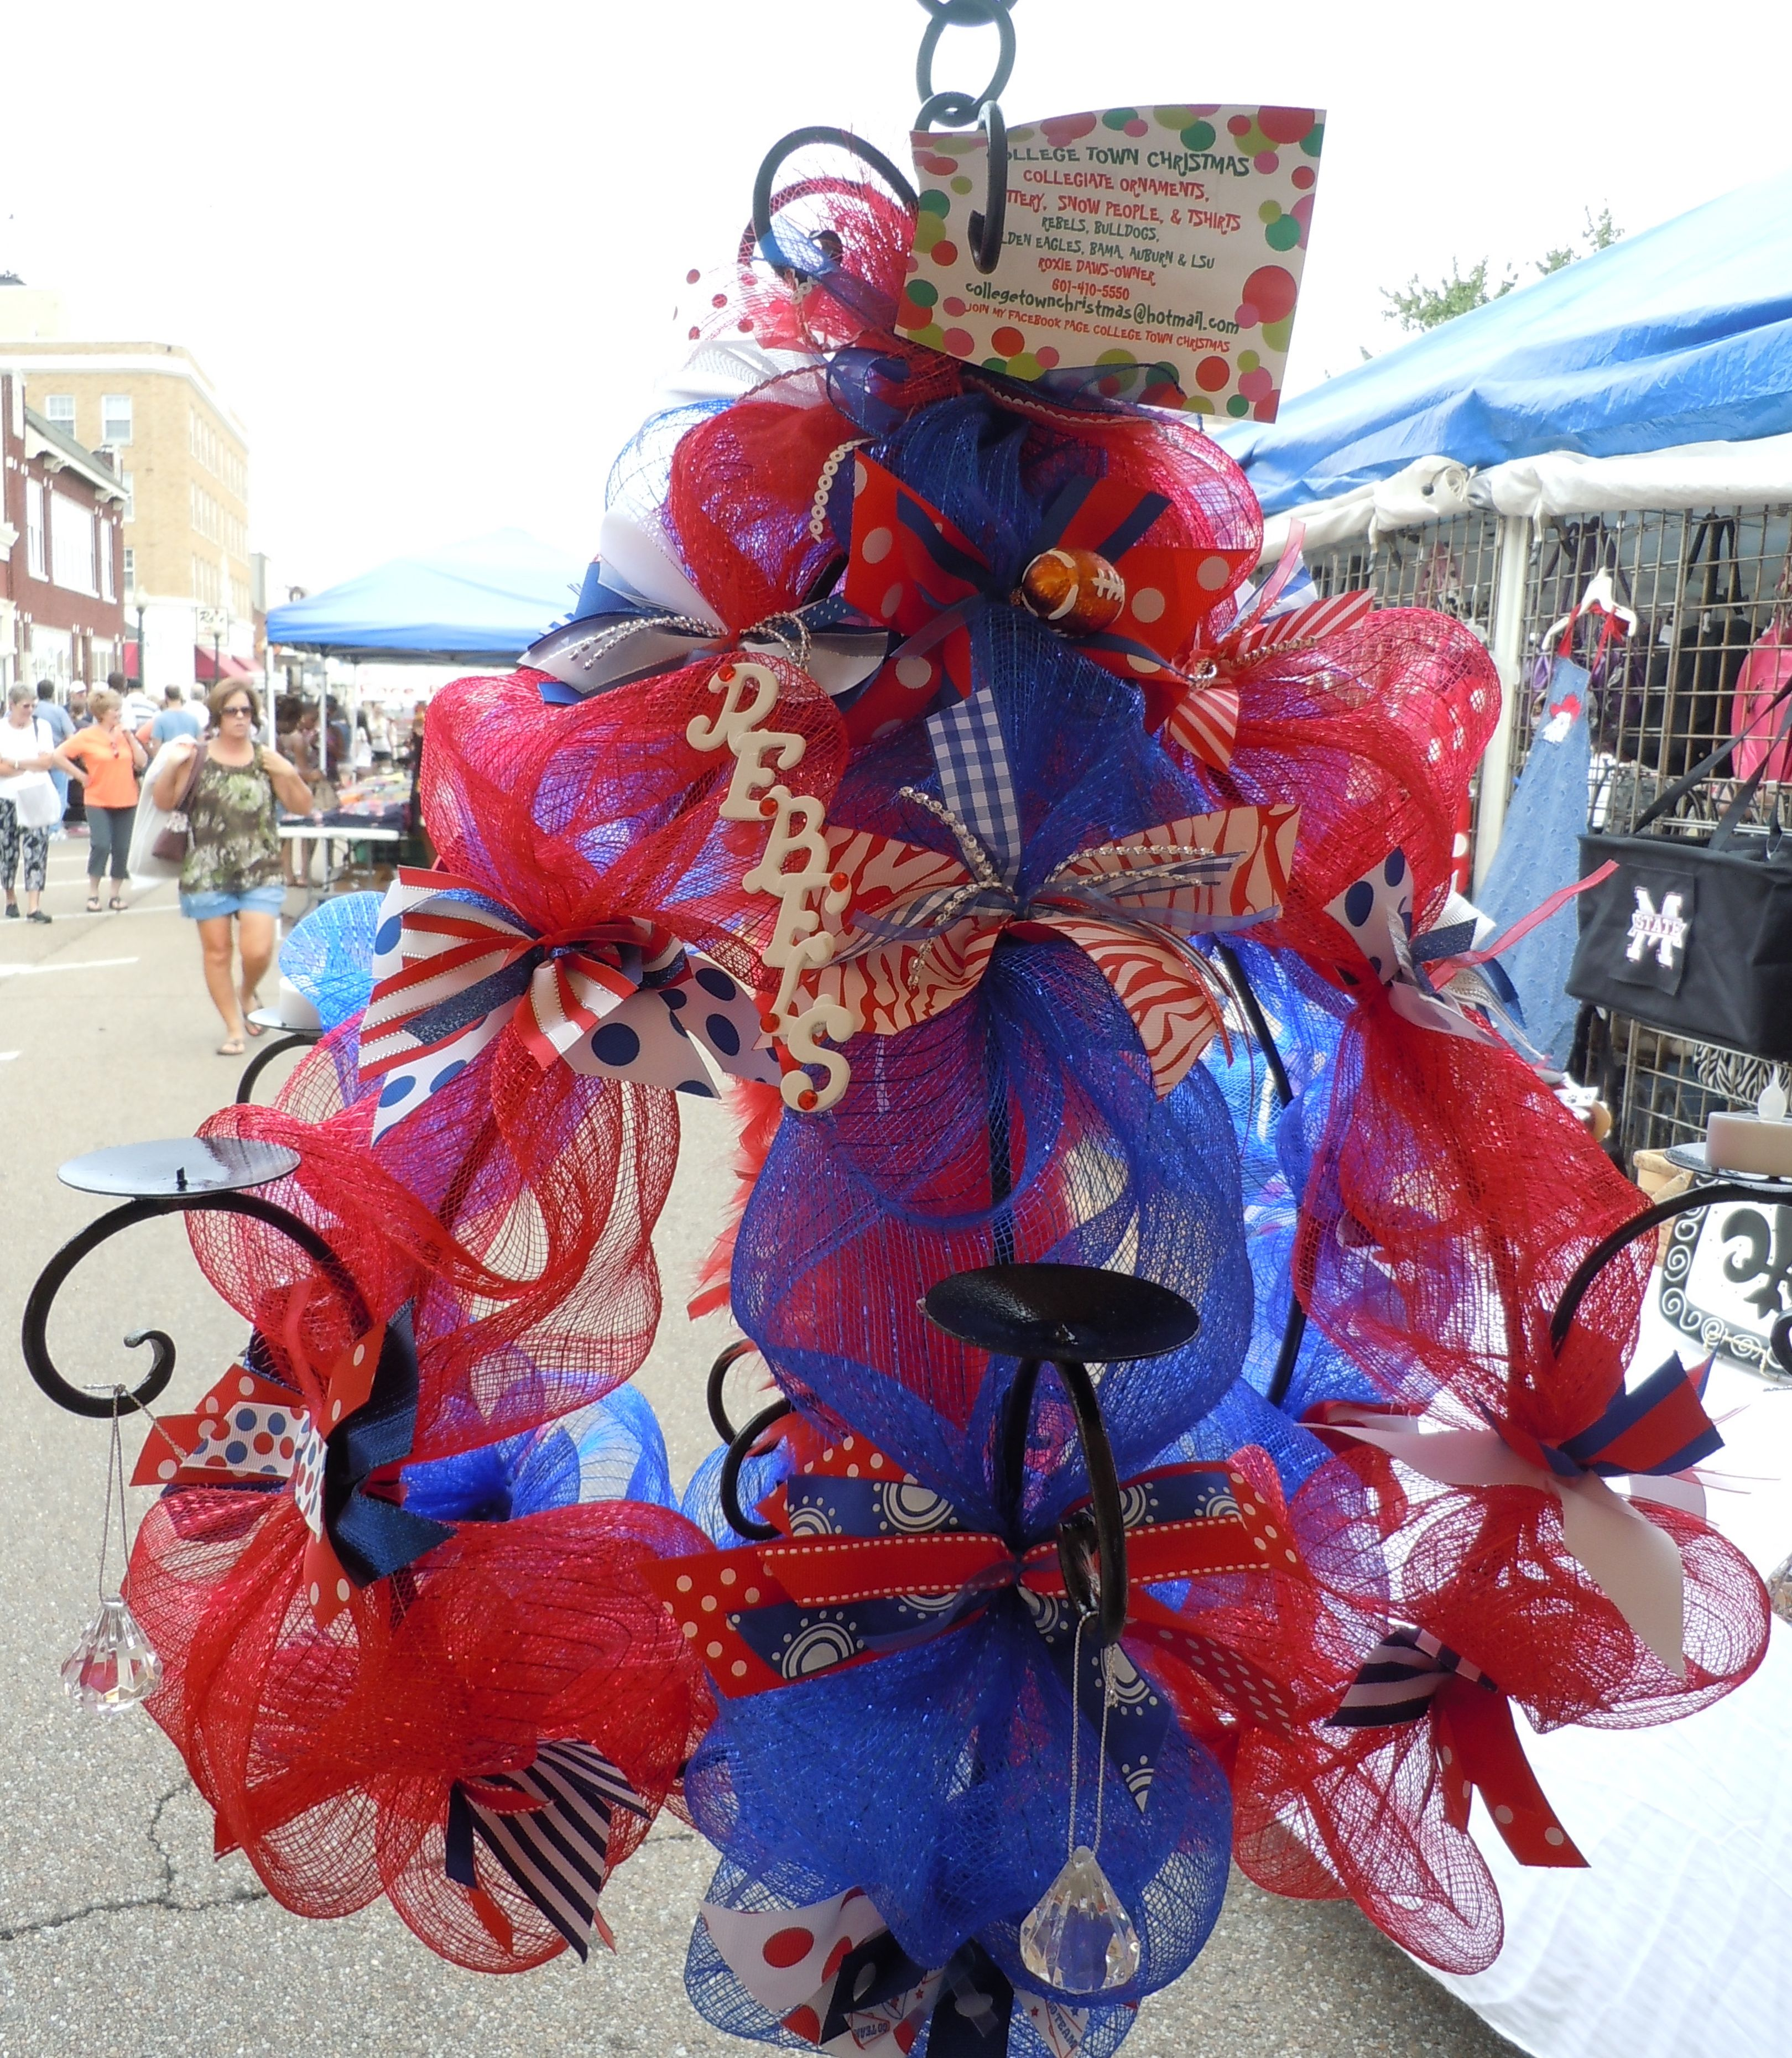 Ole miss chandelier roxie pinterest tailgating craft and crafty tailgate fanatics ole miss chandelier for tent arubaitofo Gallery